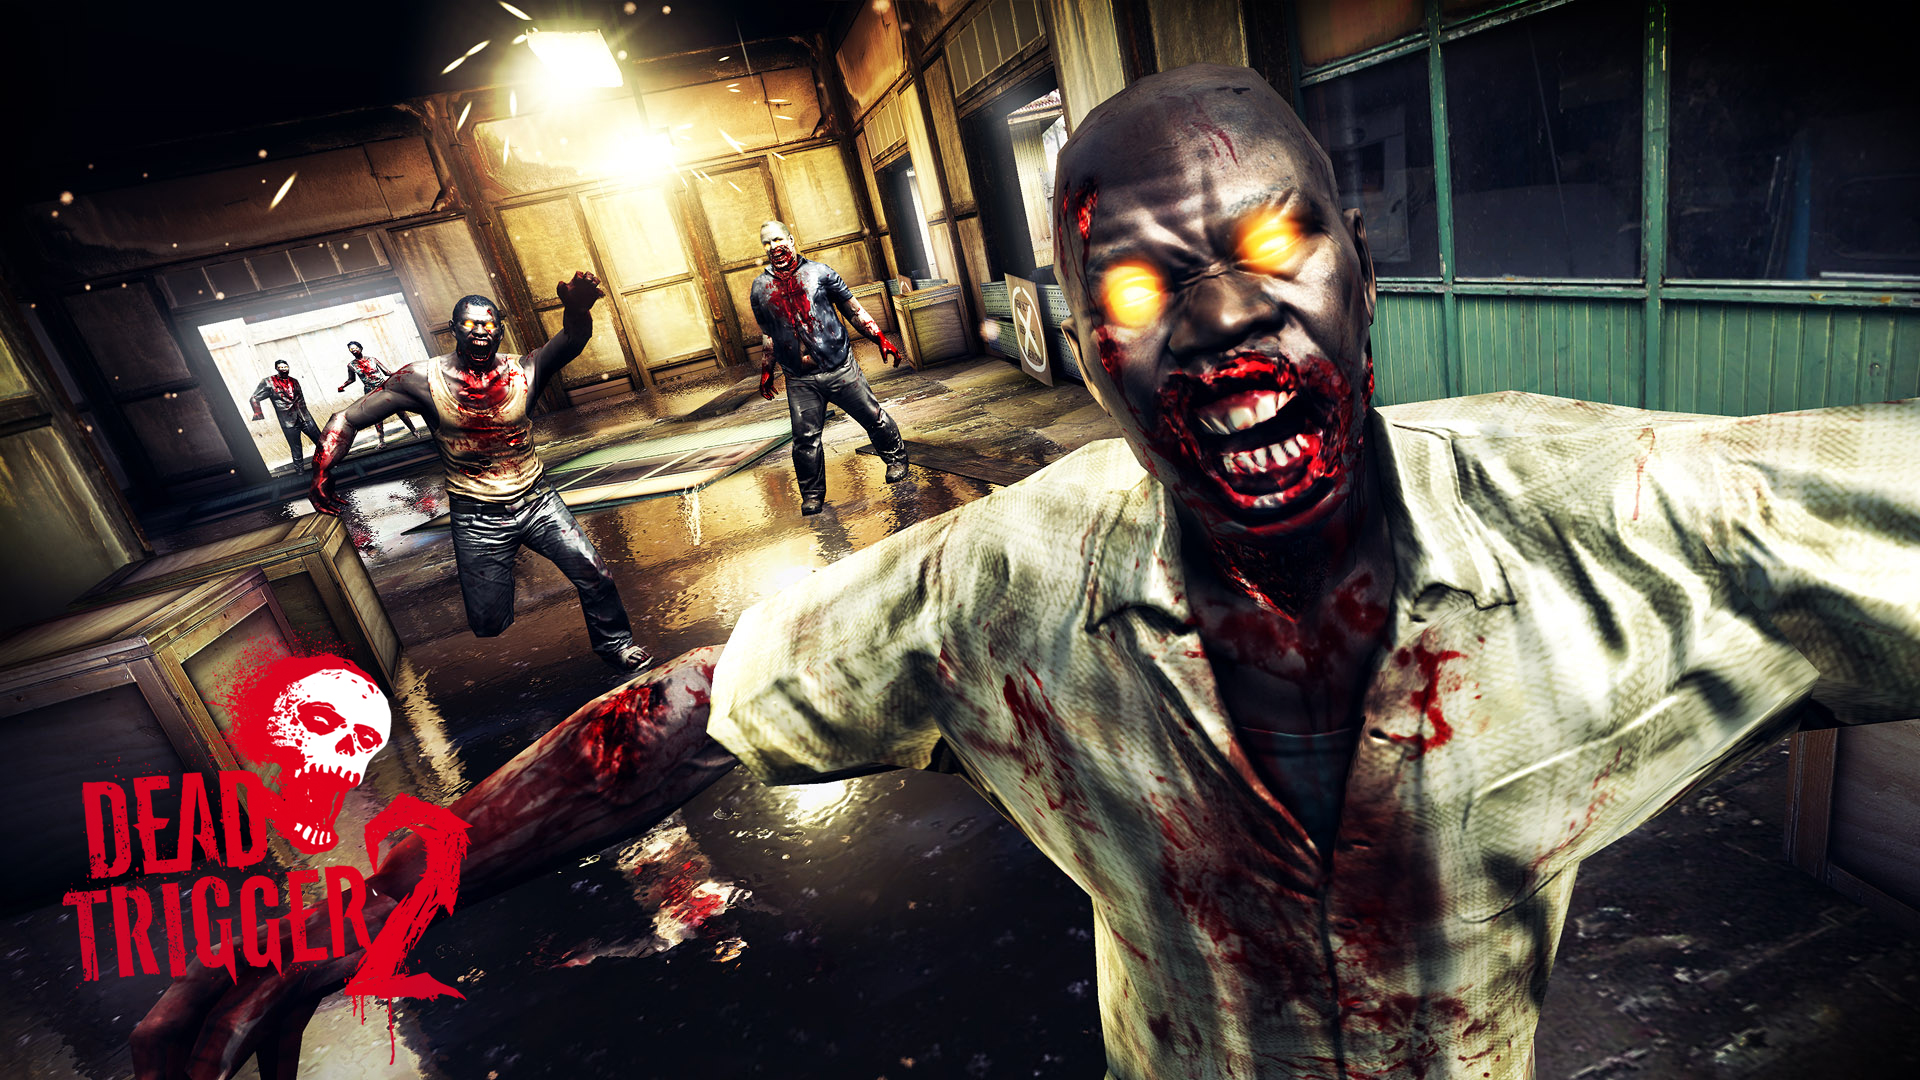 Download Dead Trigger 2 And Start Killing Zombies Now